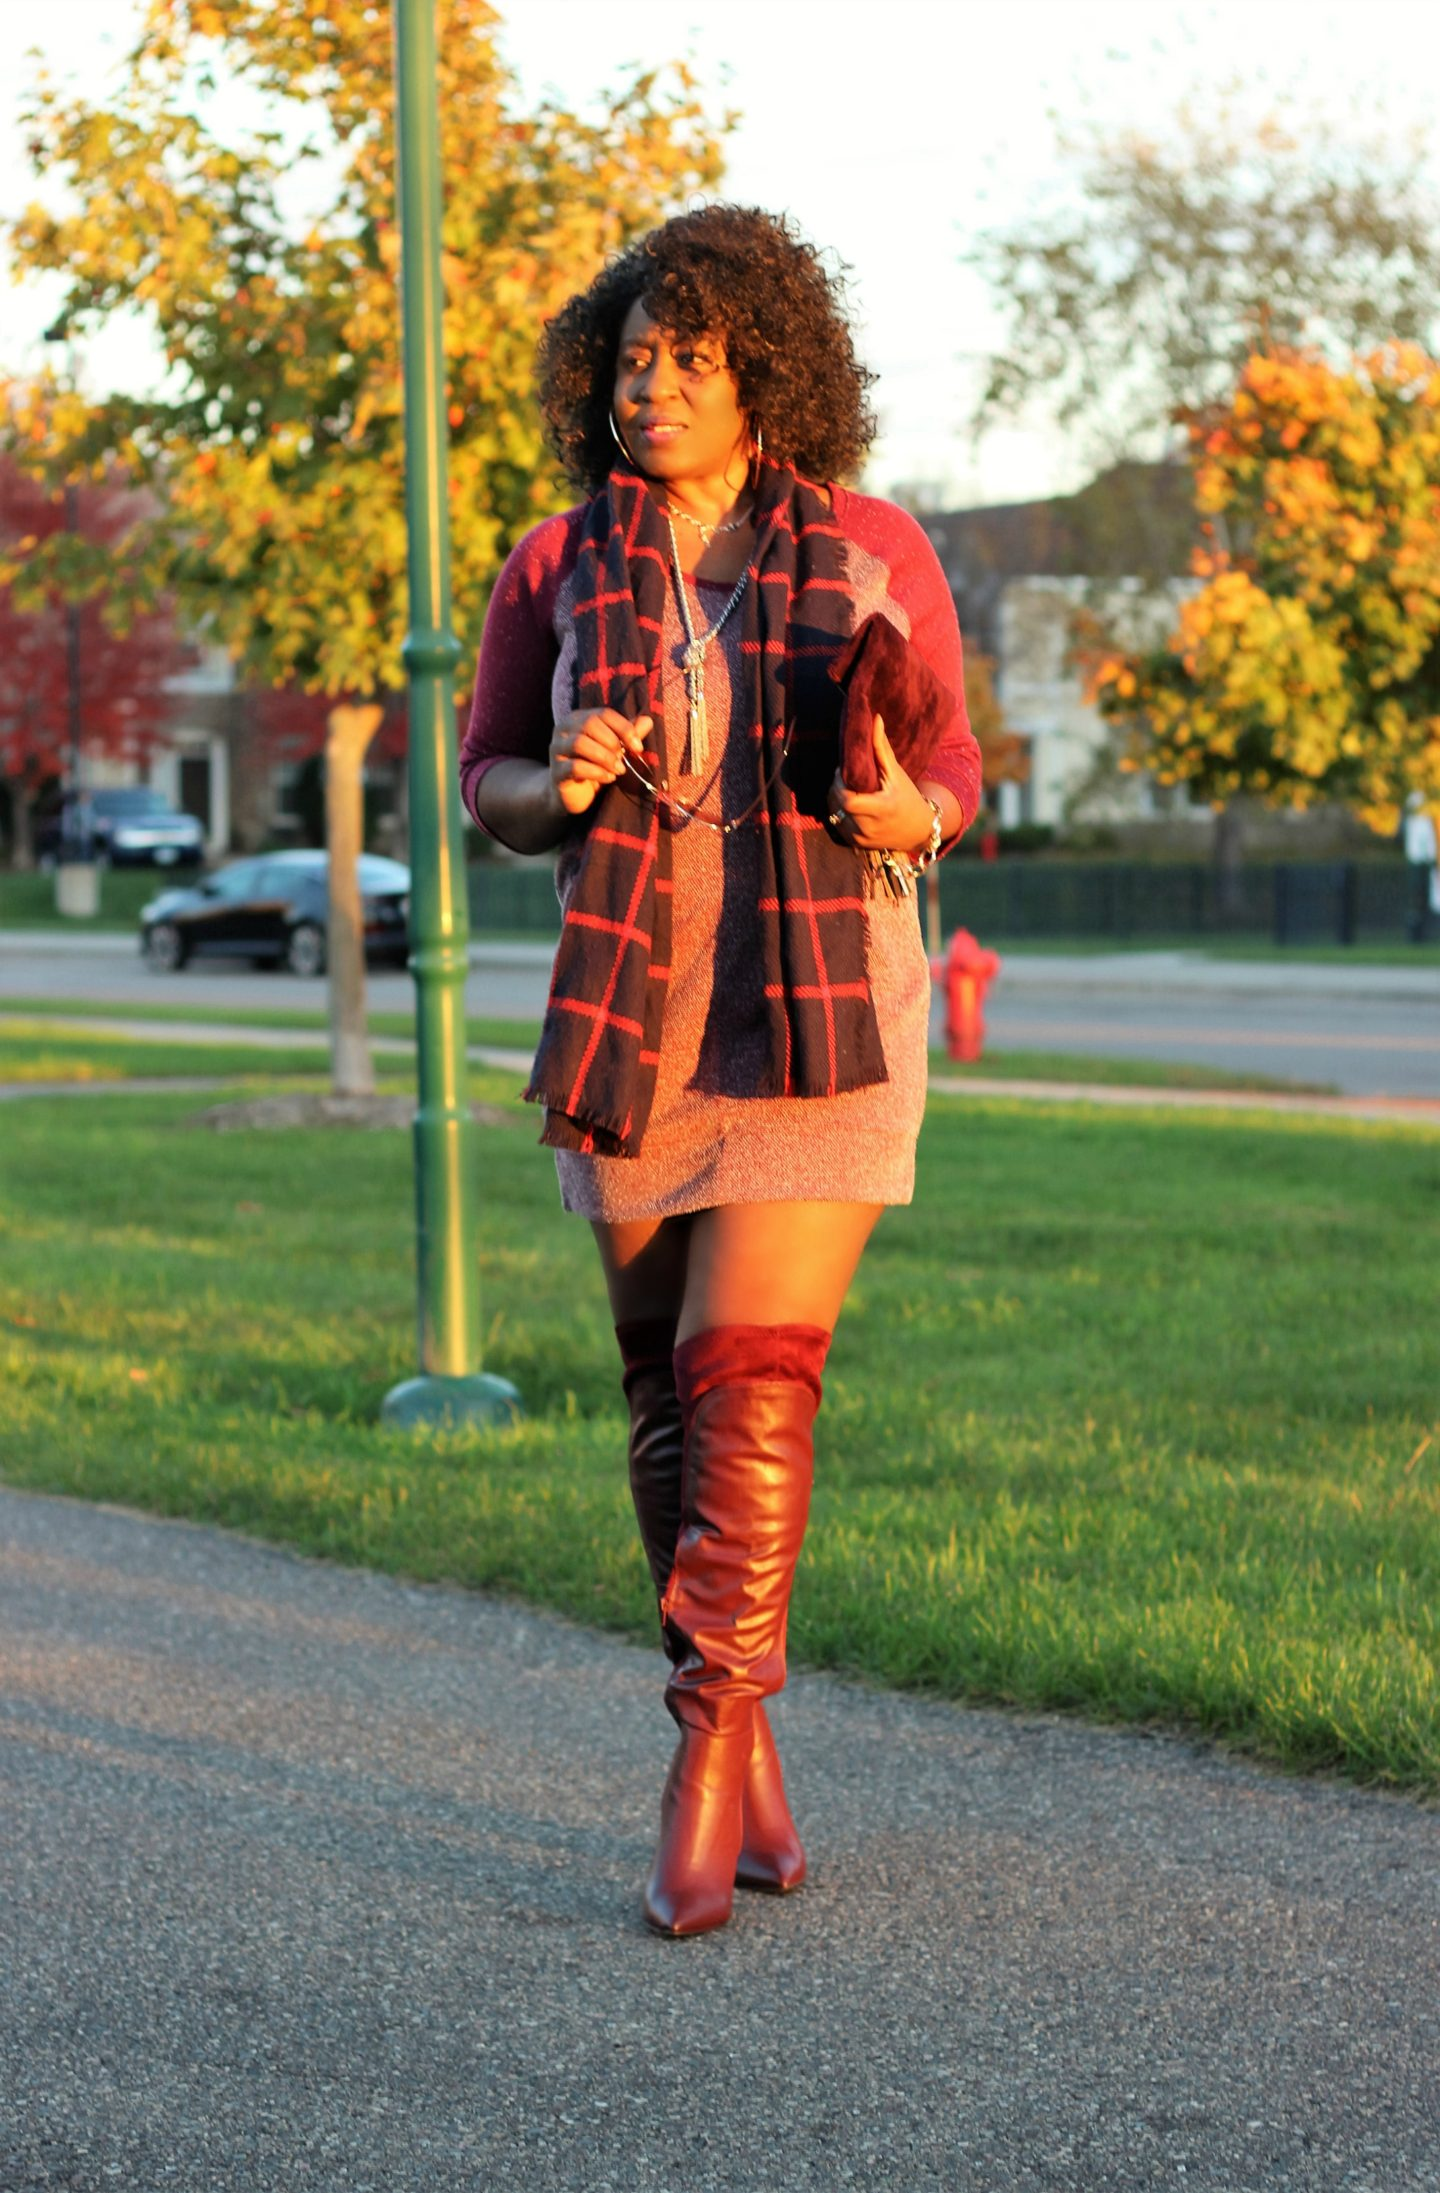 oxblood-sweater-and-boots-and-plaids-scarf-20